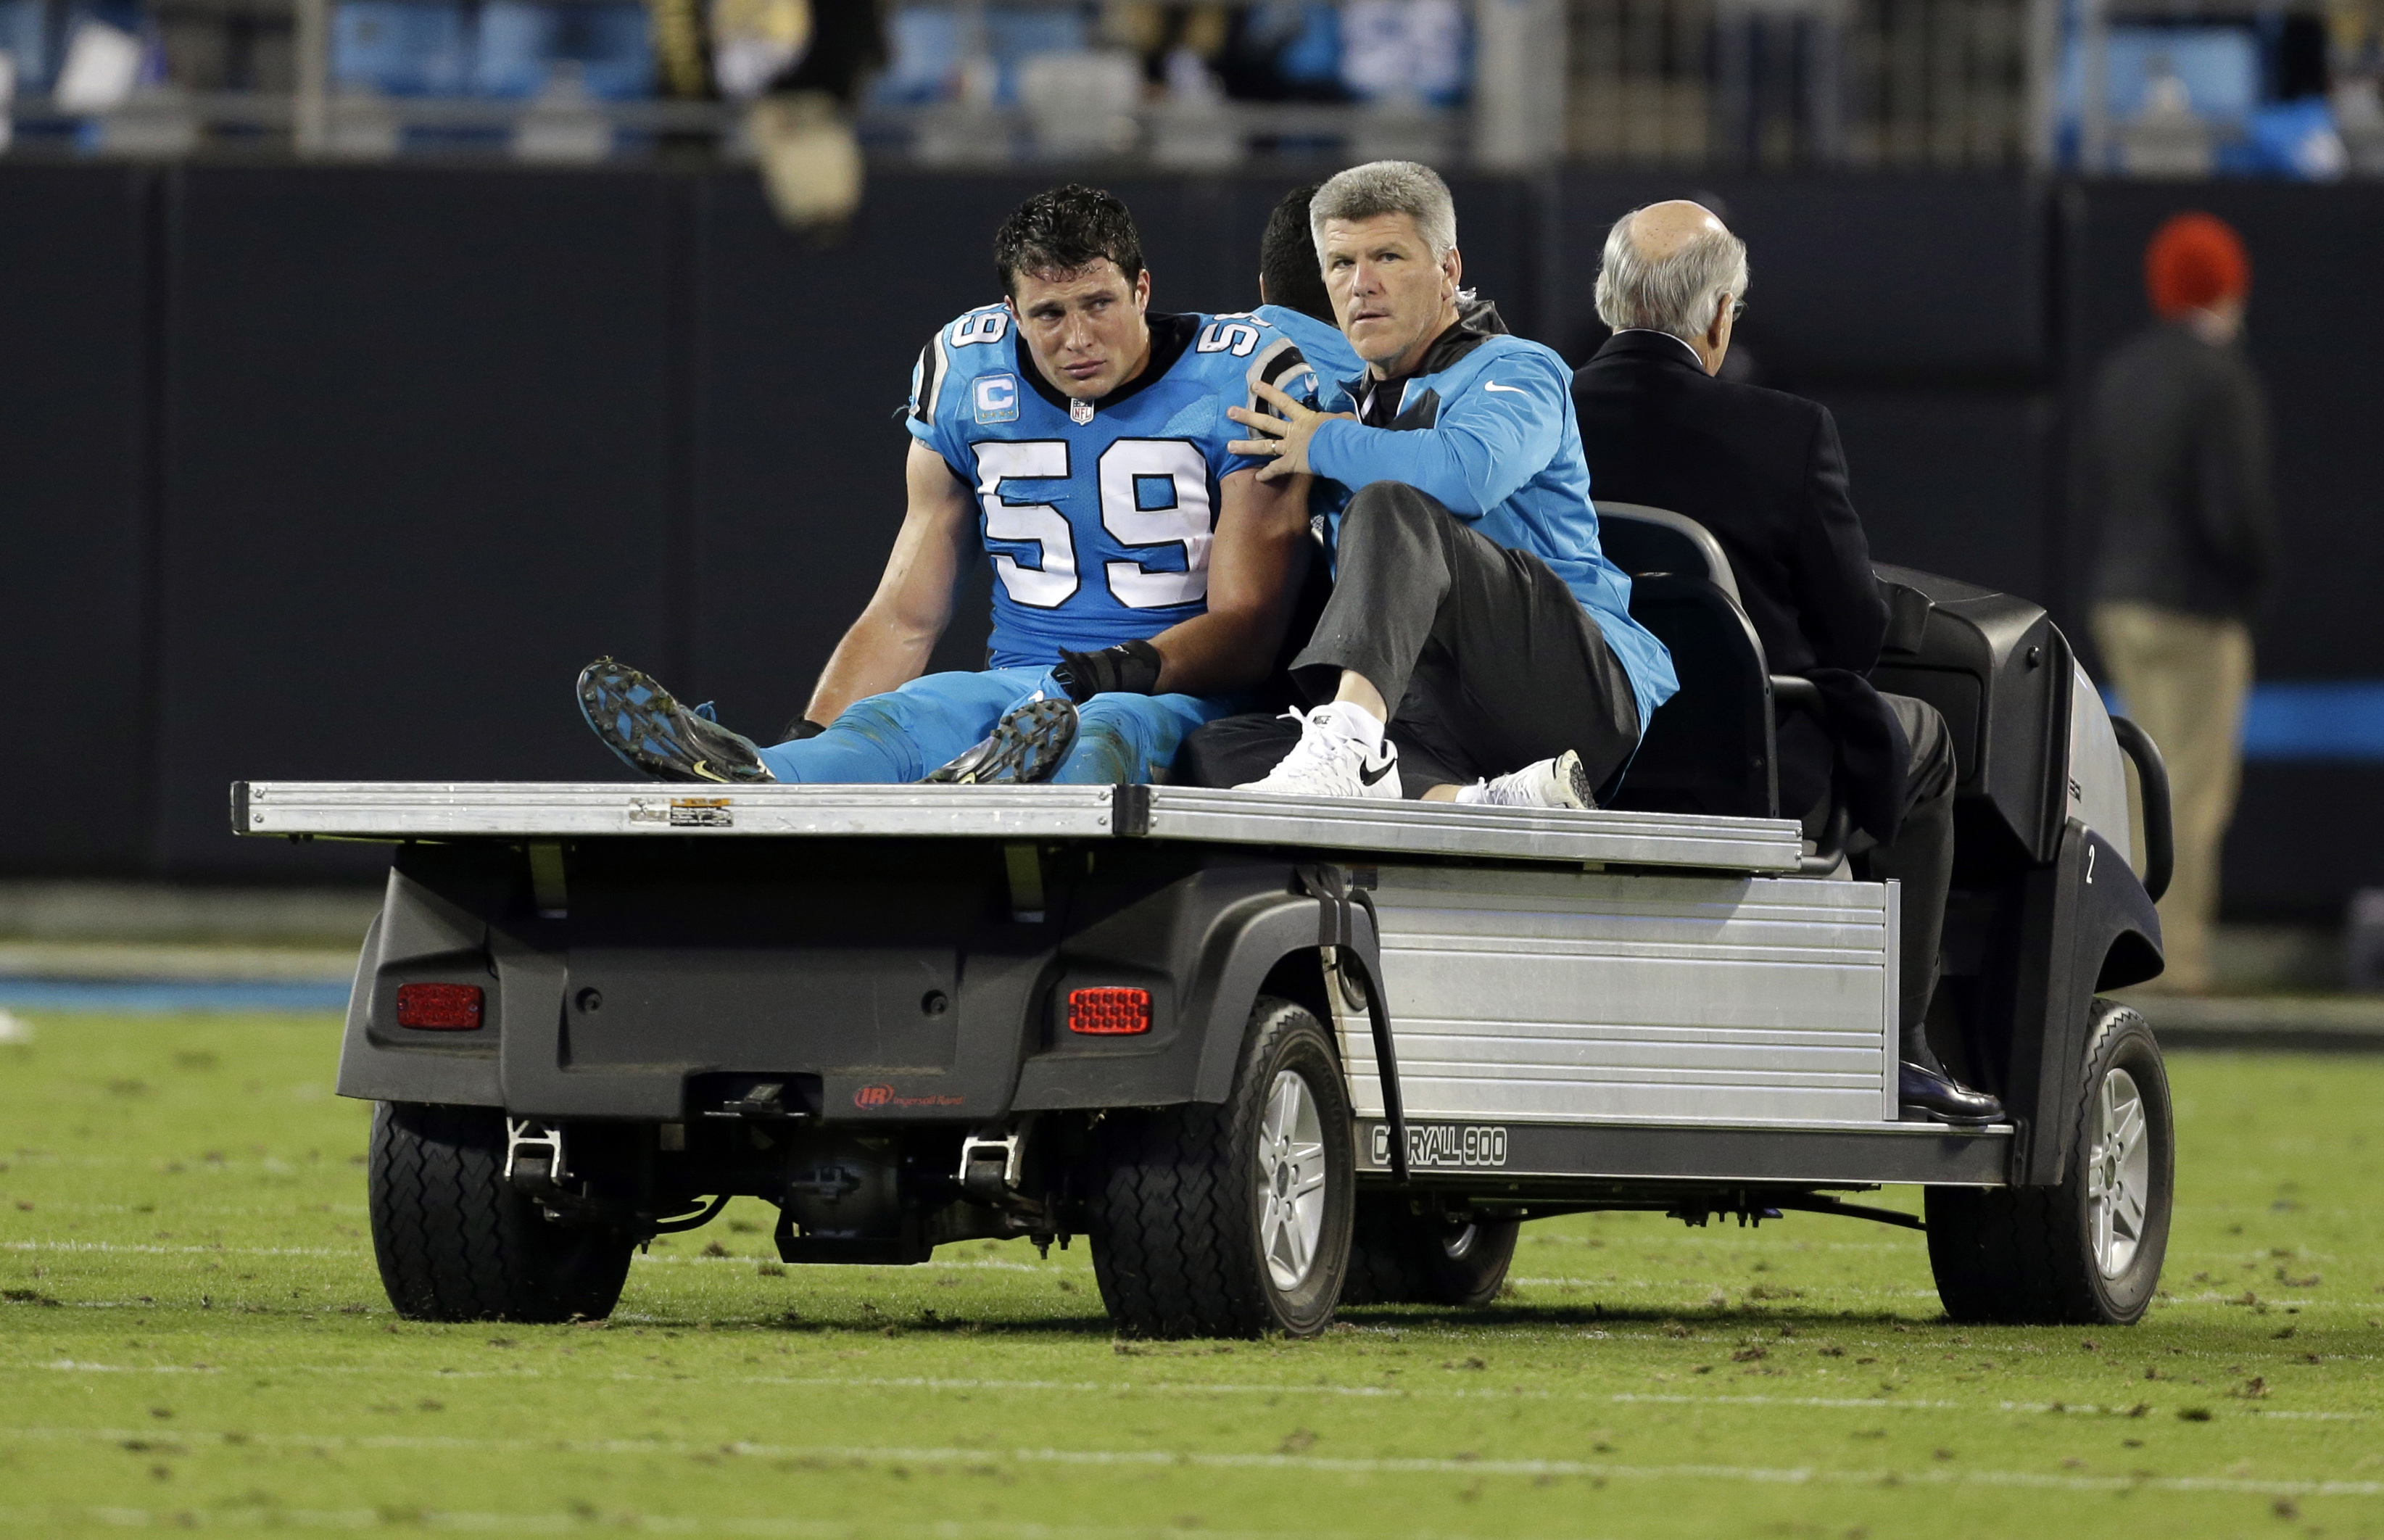 FILE - In this Nov. 17, 2016, file photo, Carolina Panthers linebacker Luke Kuechly (59) is taken off the field after being injured in the second half of an NFL football game against the New Orleans Saints, in Charlotte, N.C. While Kuechly desperately wan